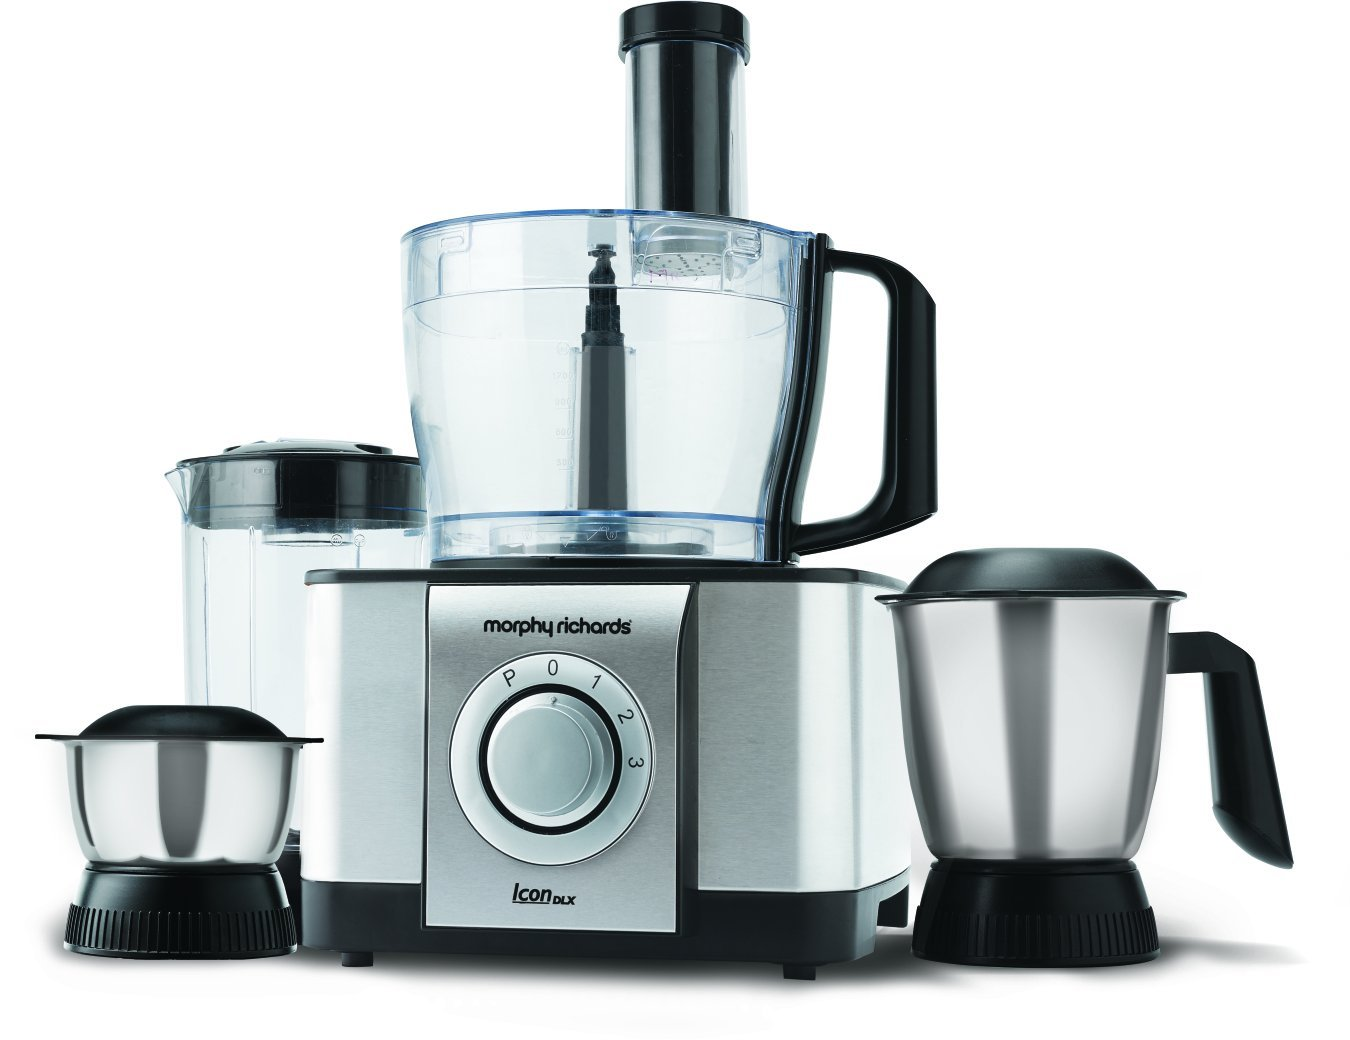 Morphy Richards Icon Dlx Food Processor Image